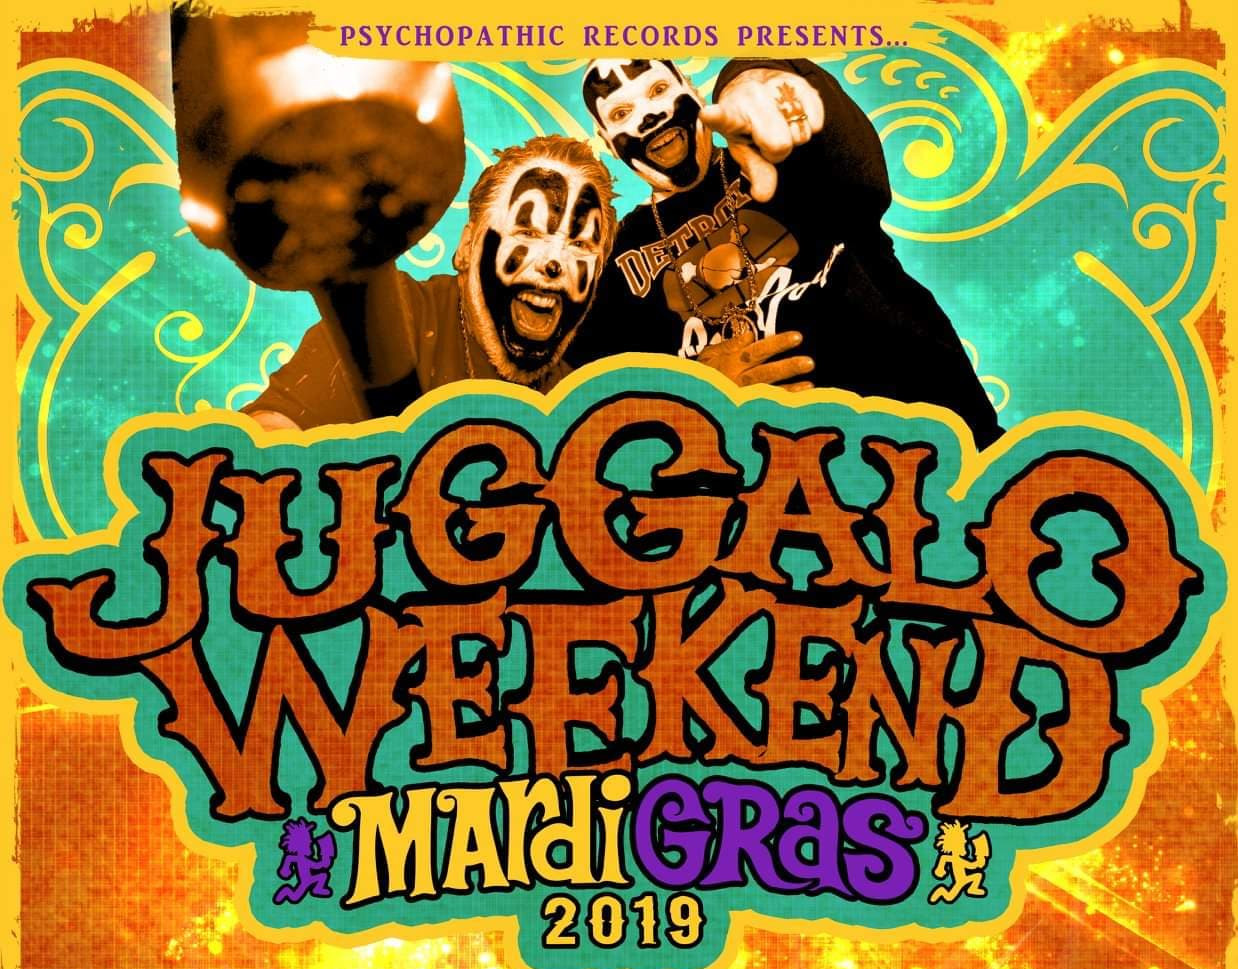 Juggalo love dating site